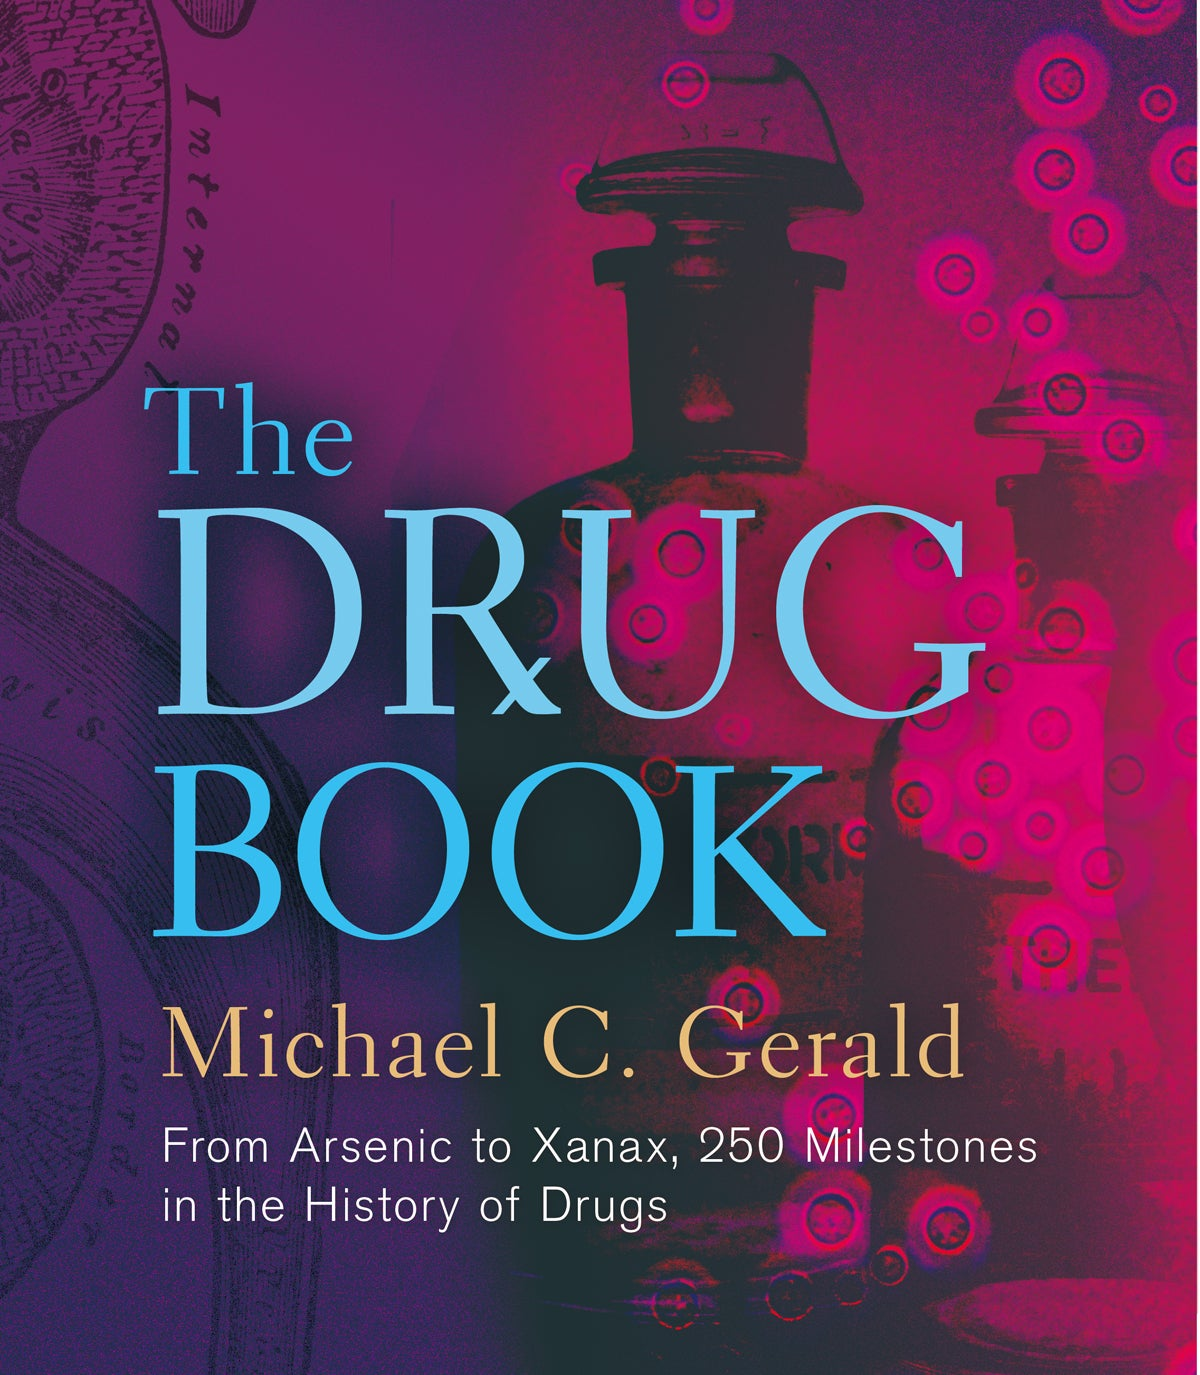 The Drug Book: From Arsenic to Xanax, 250 Milestones in the History of Drug